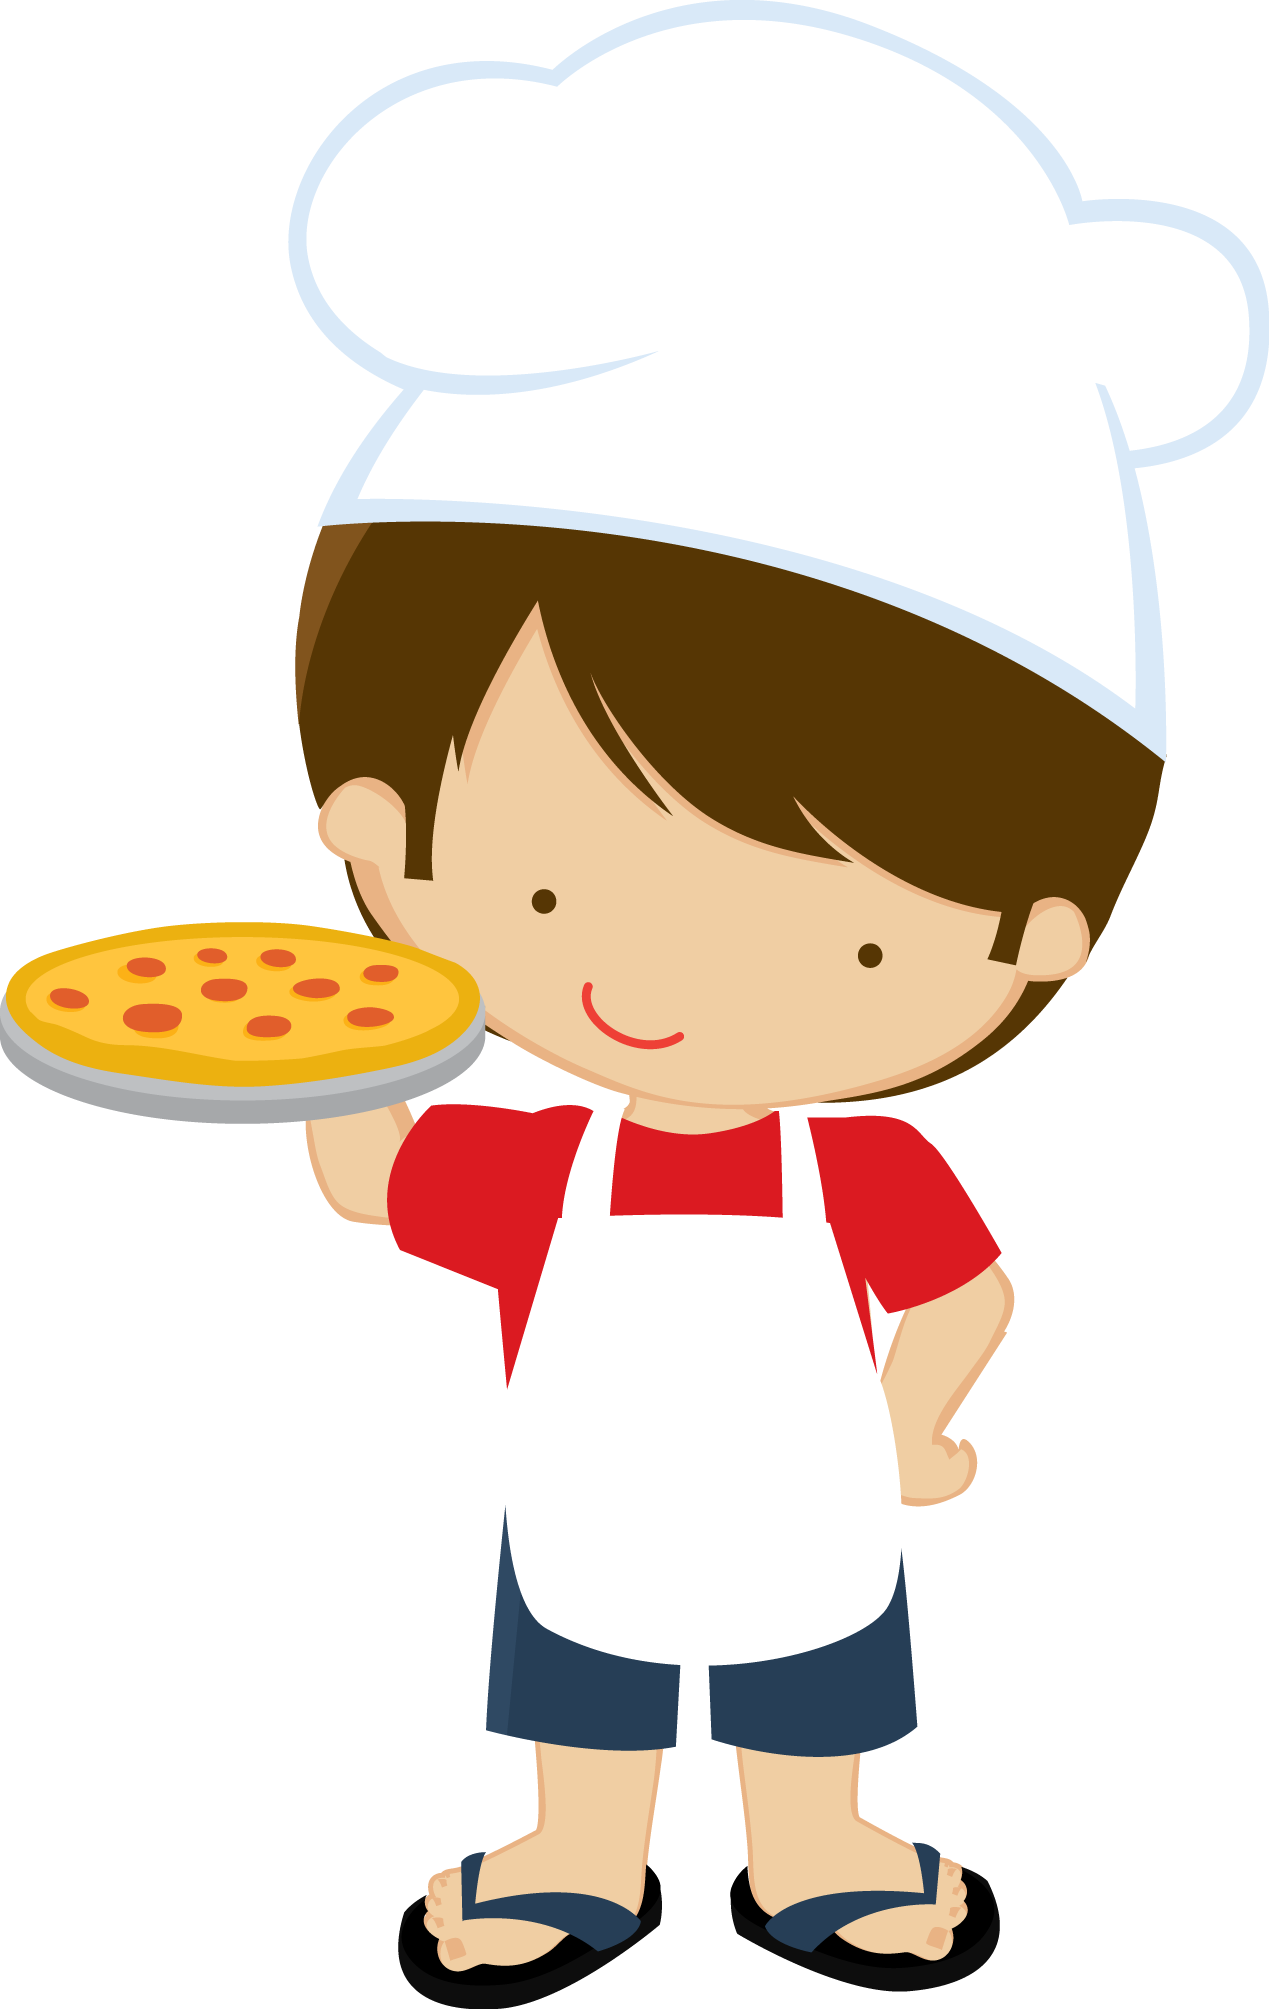 Pizza heart clipart jpg royalty free library Menino Pizza | #daJuuh | etiquetas | Pinterest | Clip art, Pizzas ... jpg royalty free library